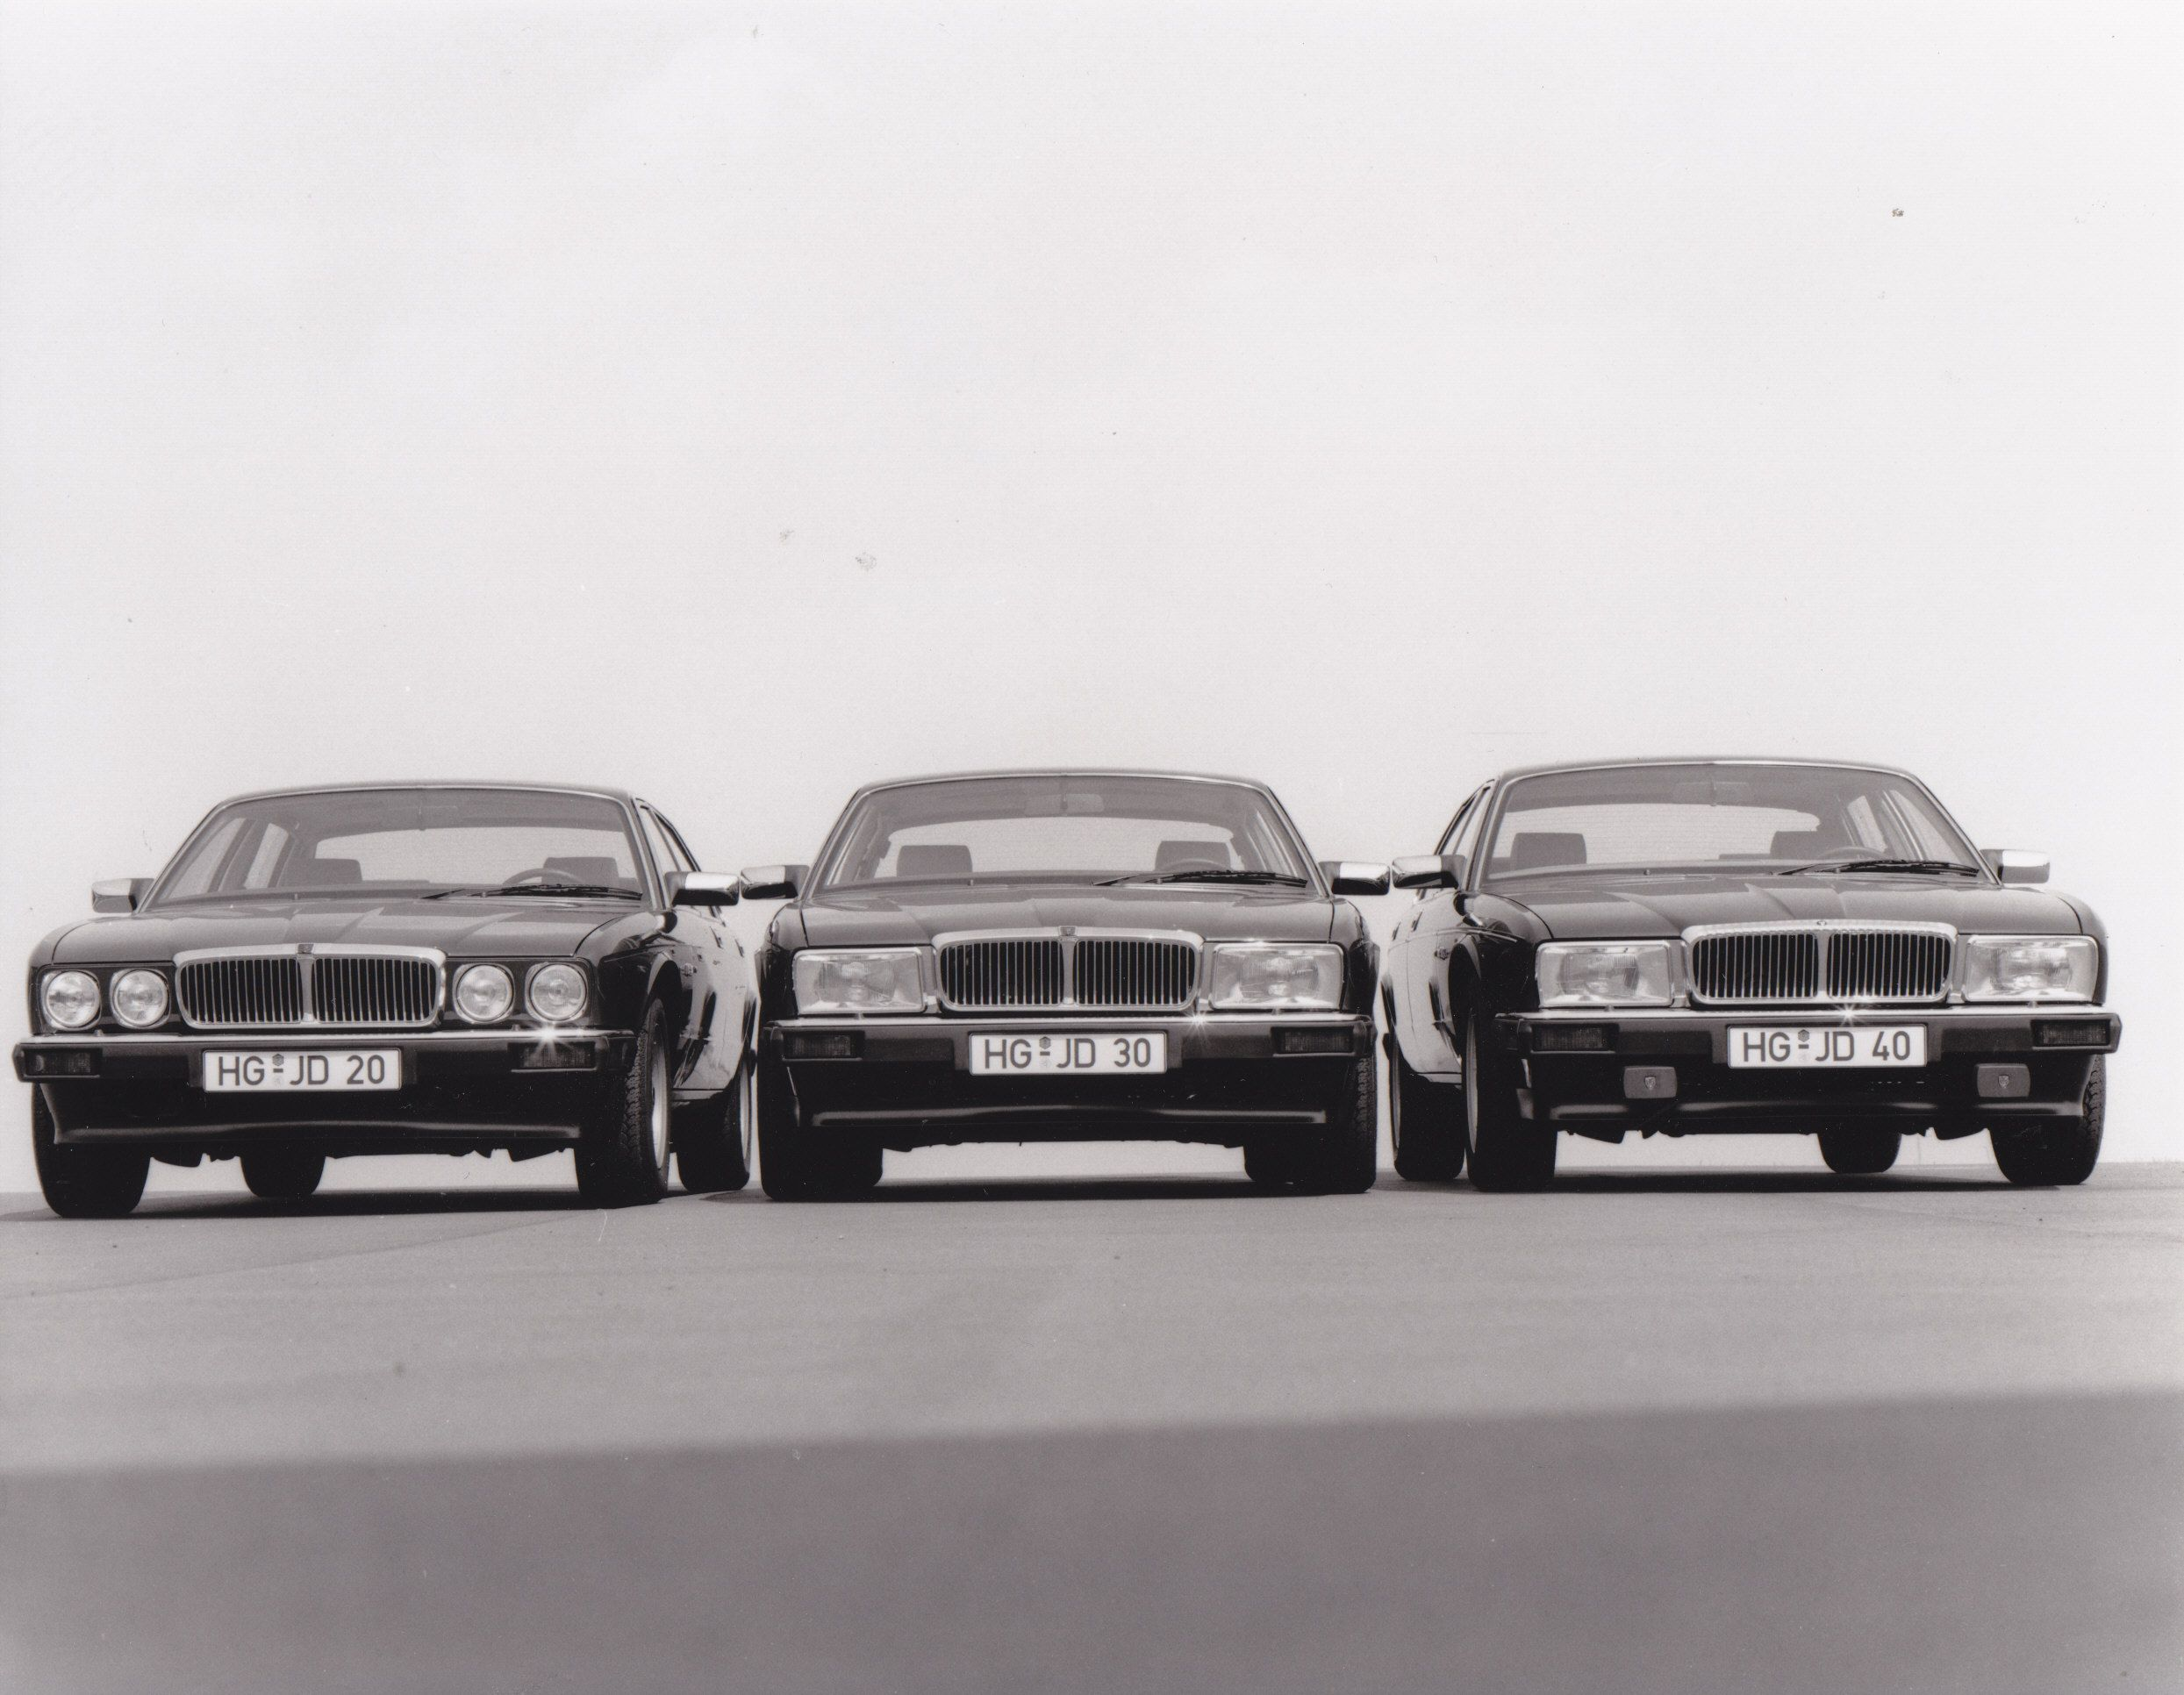 Jaguar XJ 6, Sovereign, Daimler (Germany)